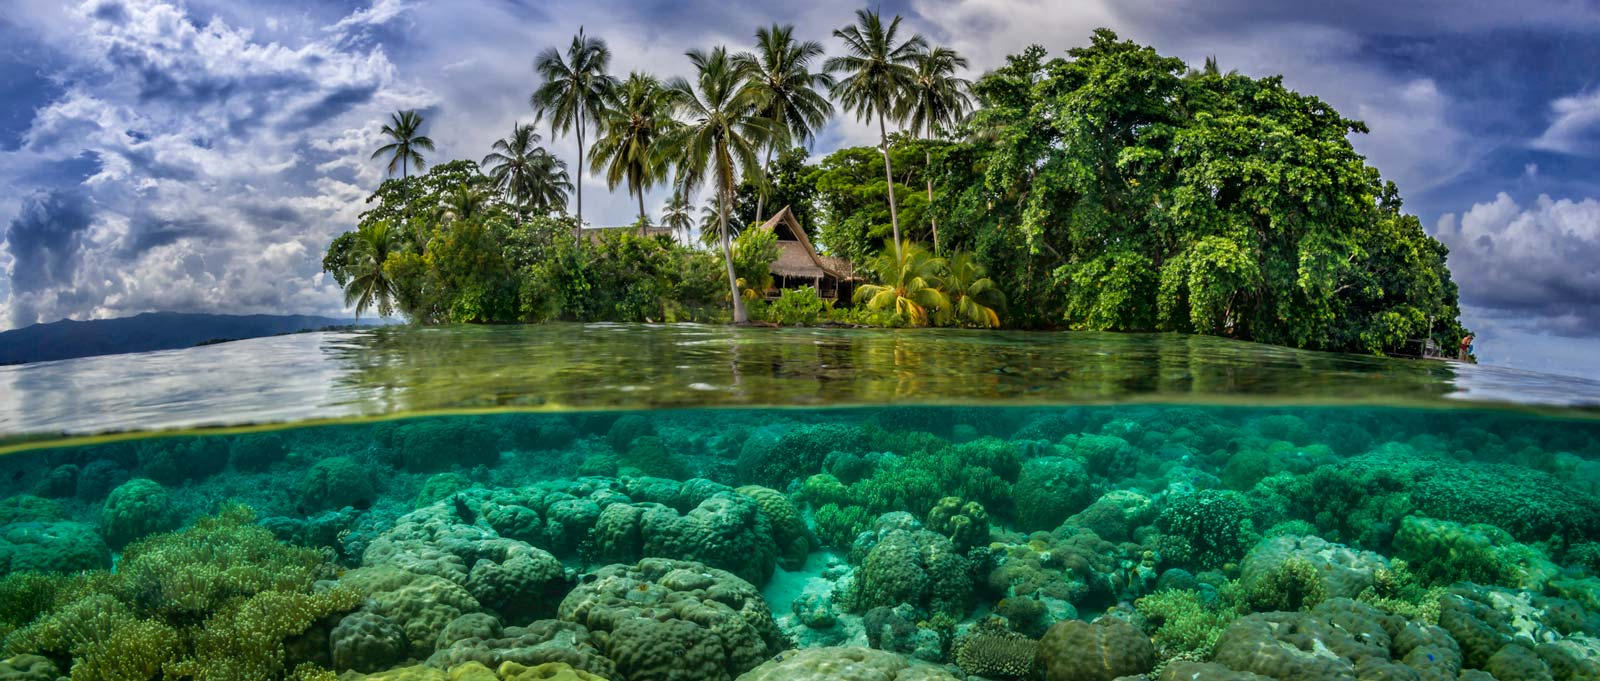 Marovo Lagoon, Solomon Islands (Photo: Getty Images)